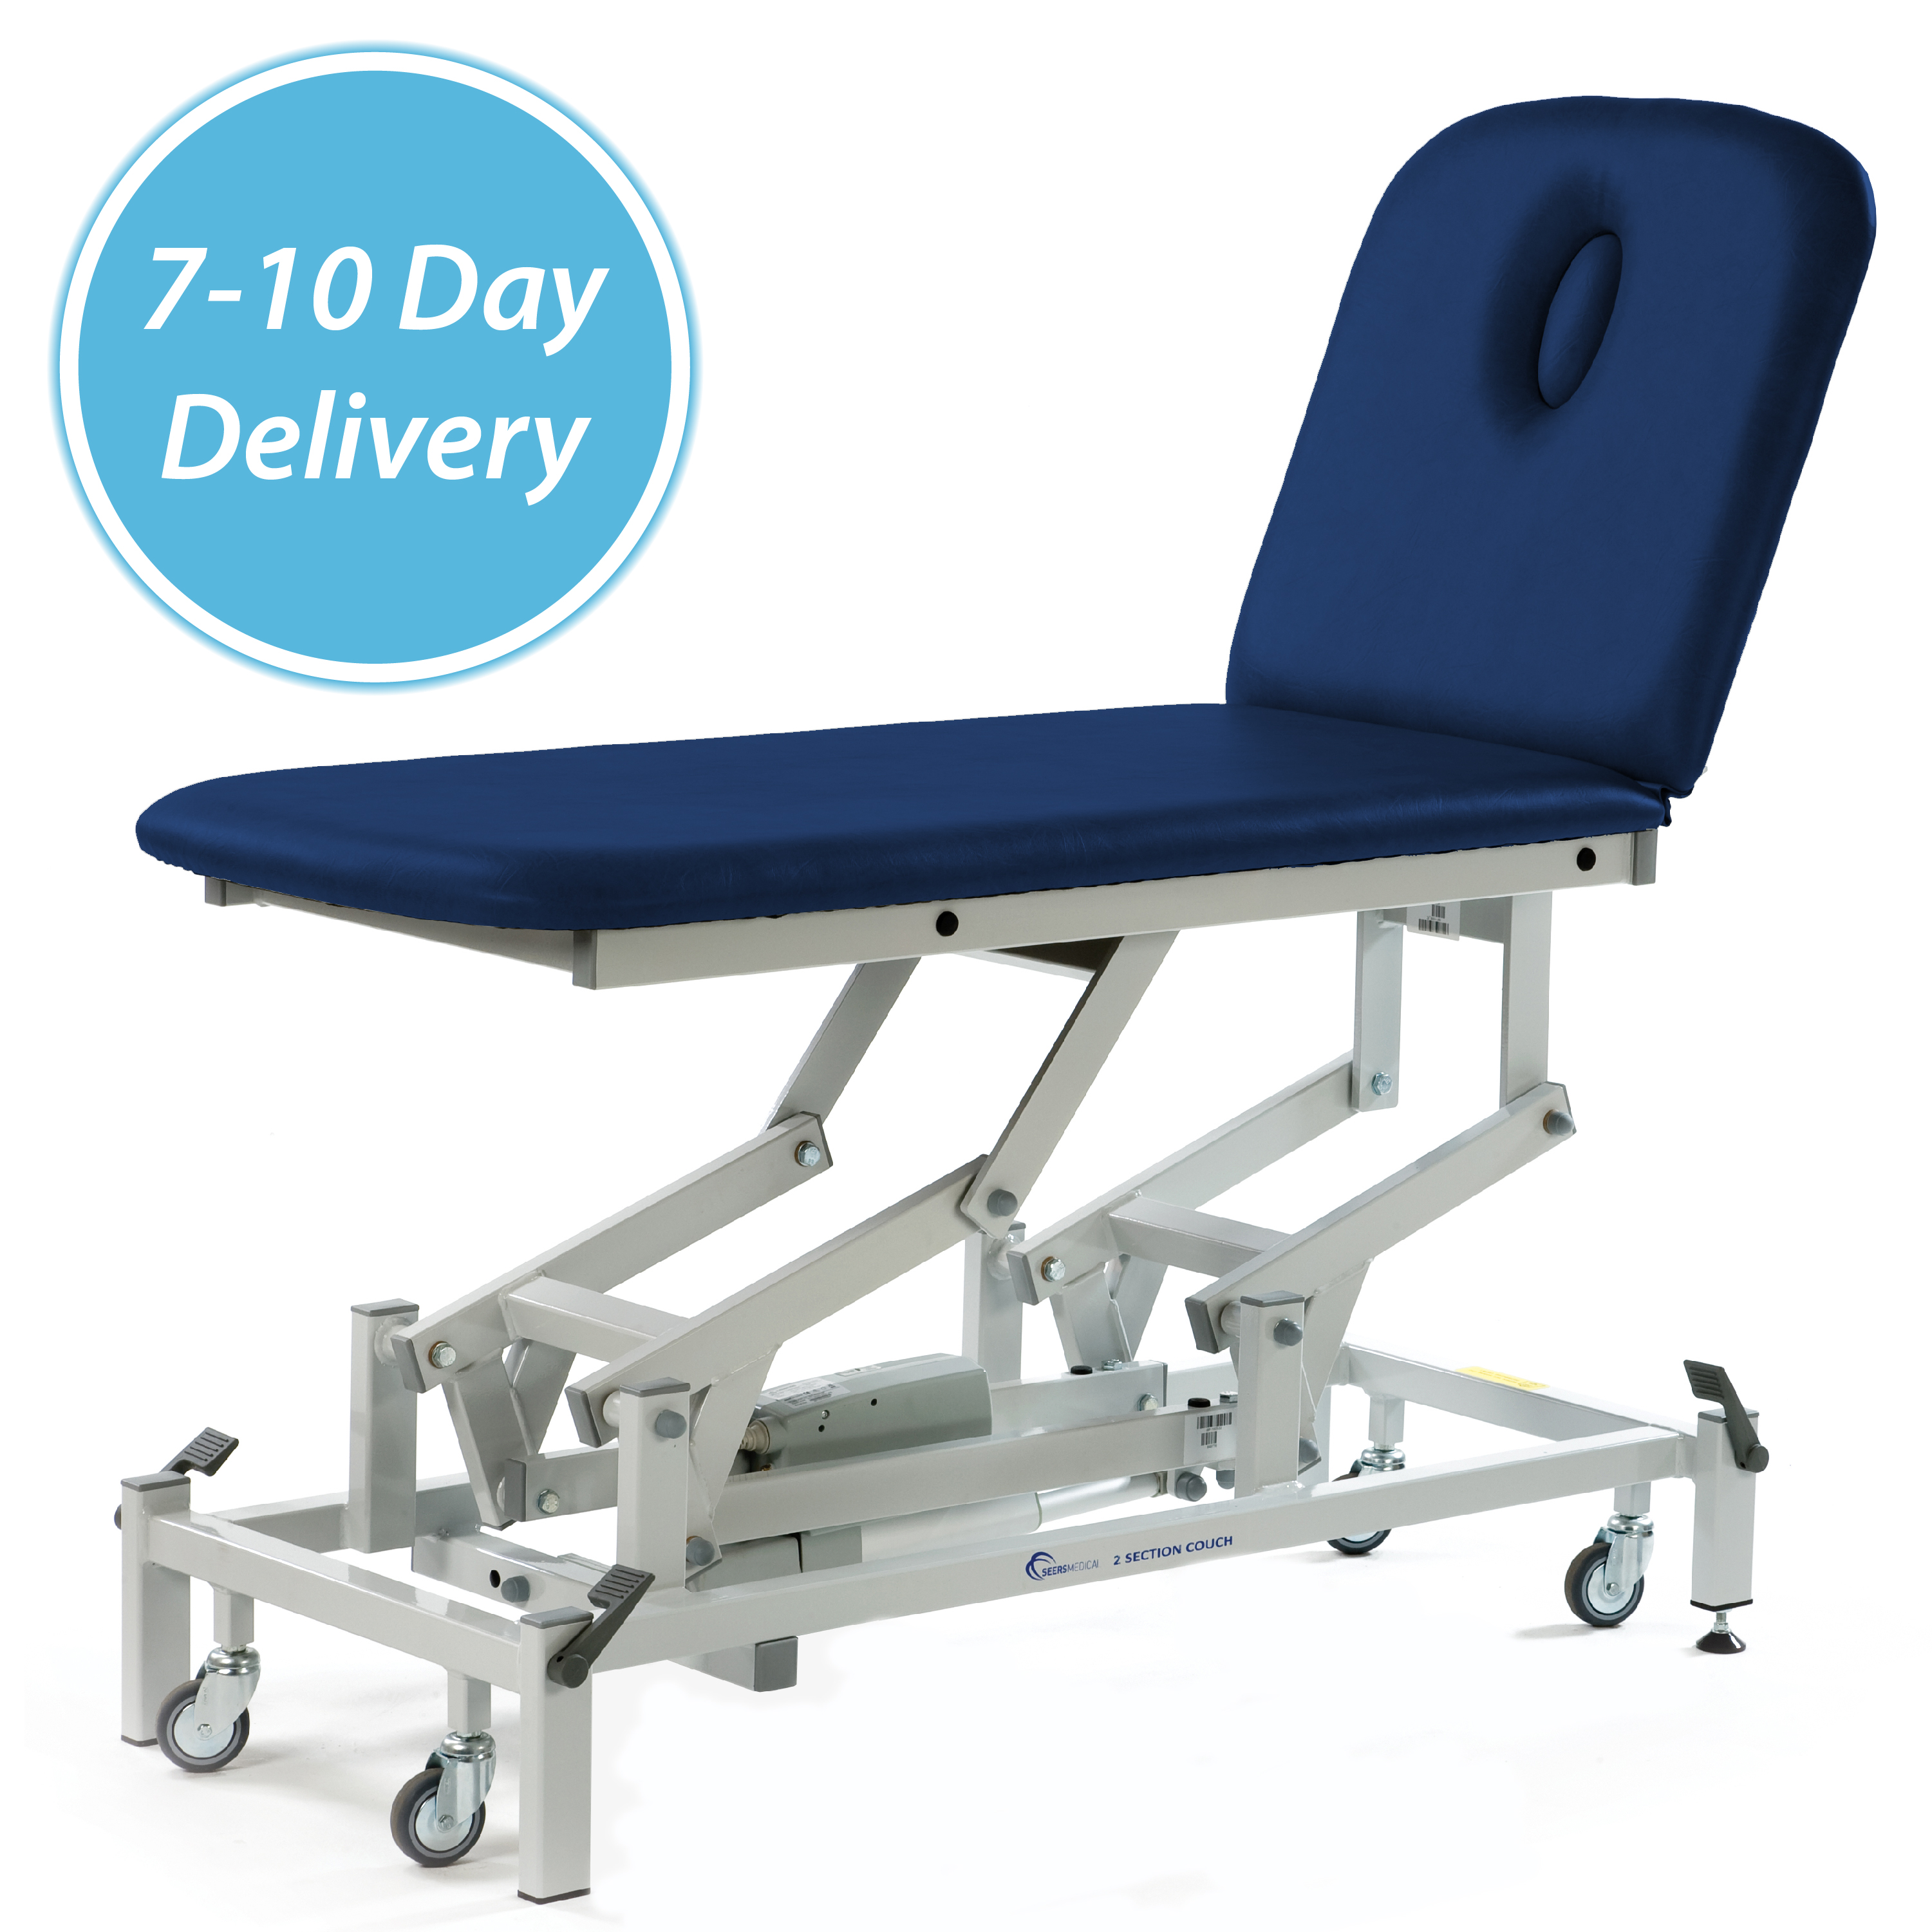 7 10 Day Lead Time 2 Section Couch Seers Medical The Leading Uk Couch Manufacturer